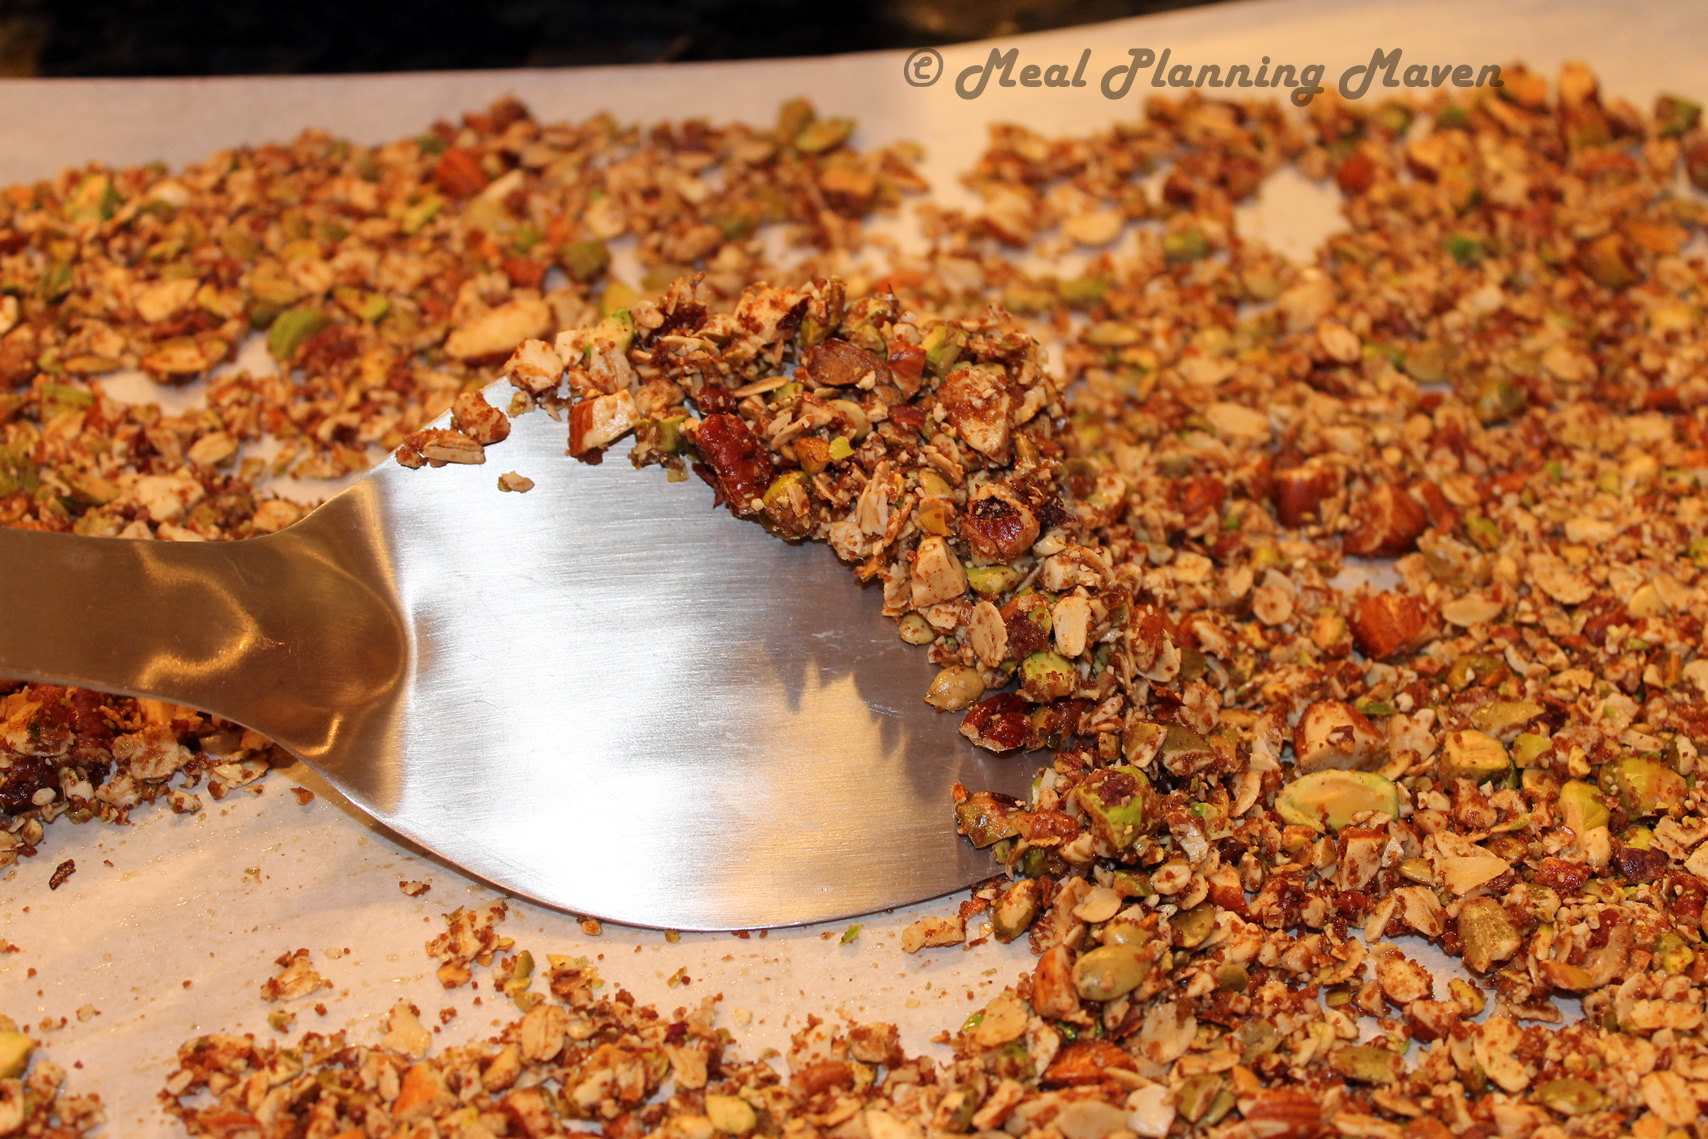 Nutty Crunchy Crumble - Meal Planning Maven